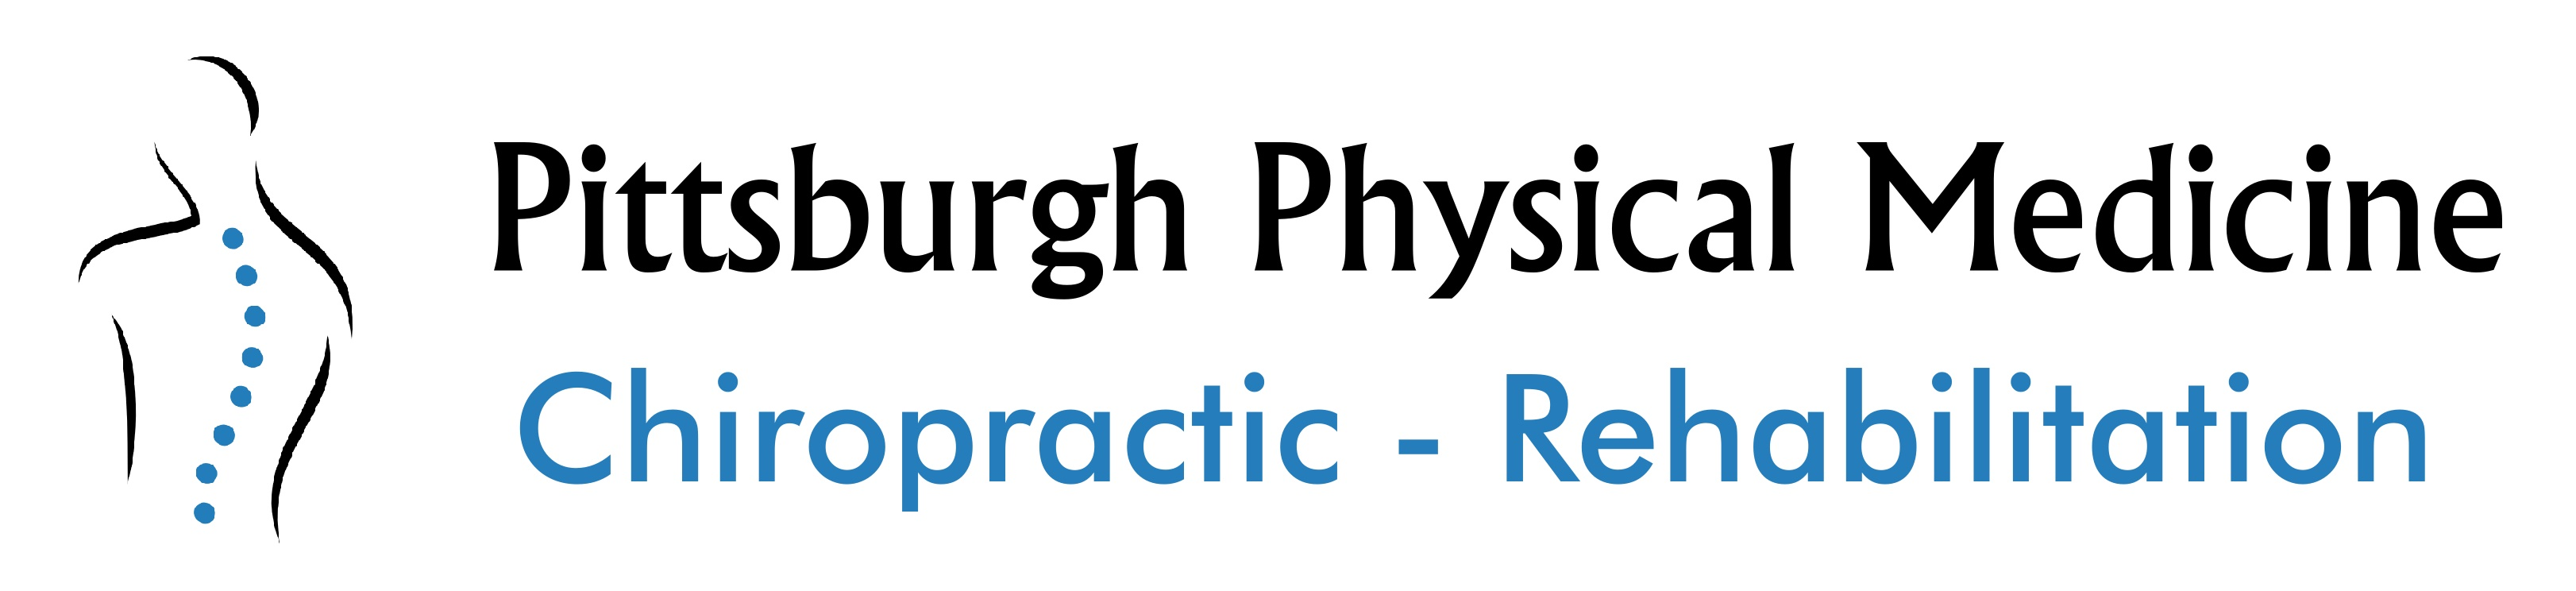 Pittsburgh Physical Medicine and Chiropractic Logo